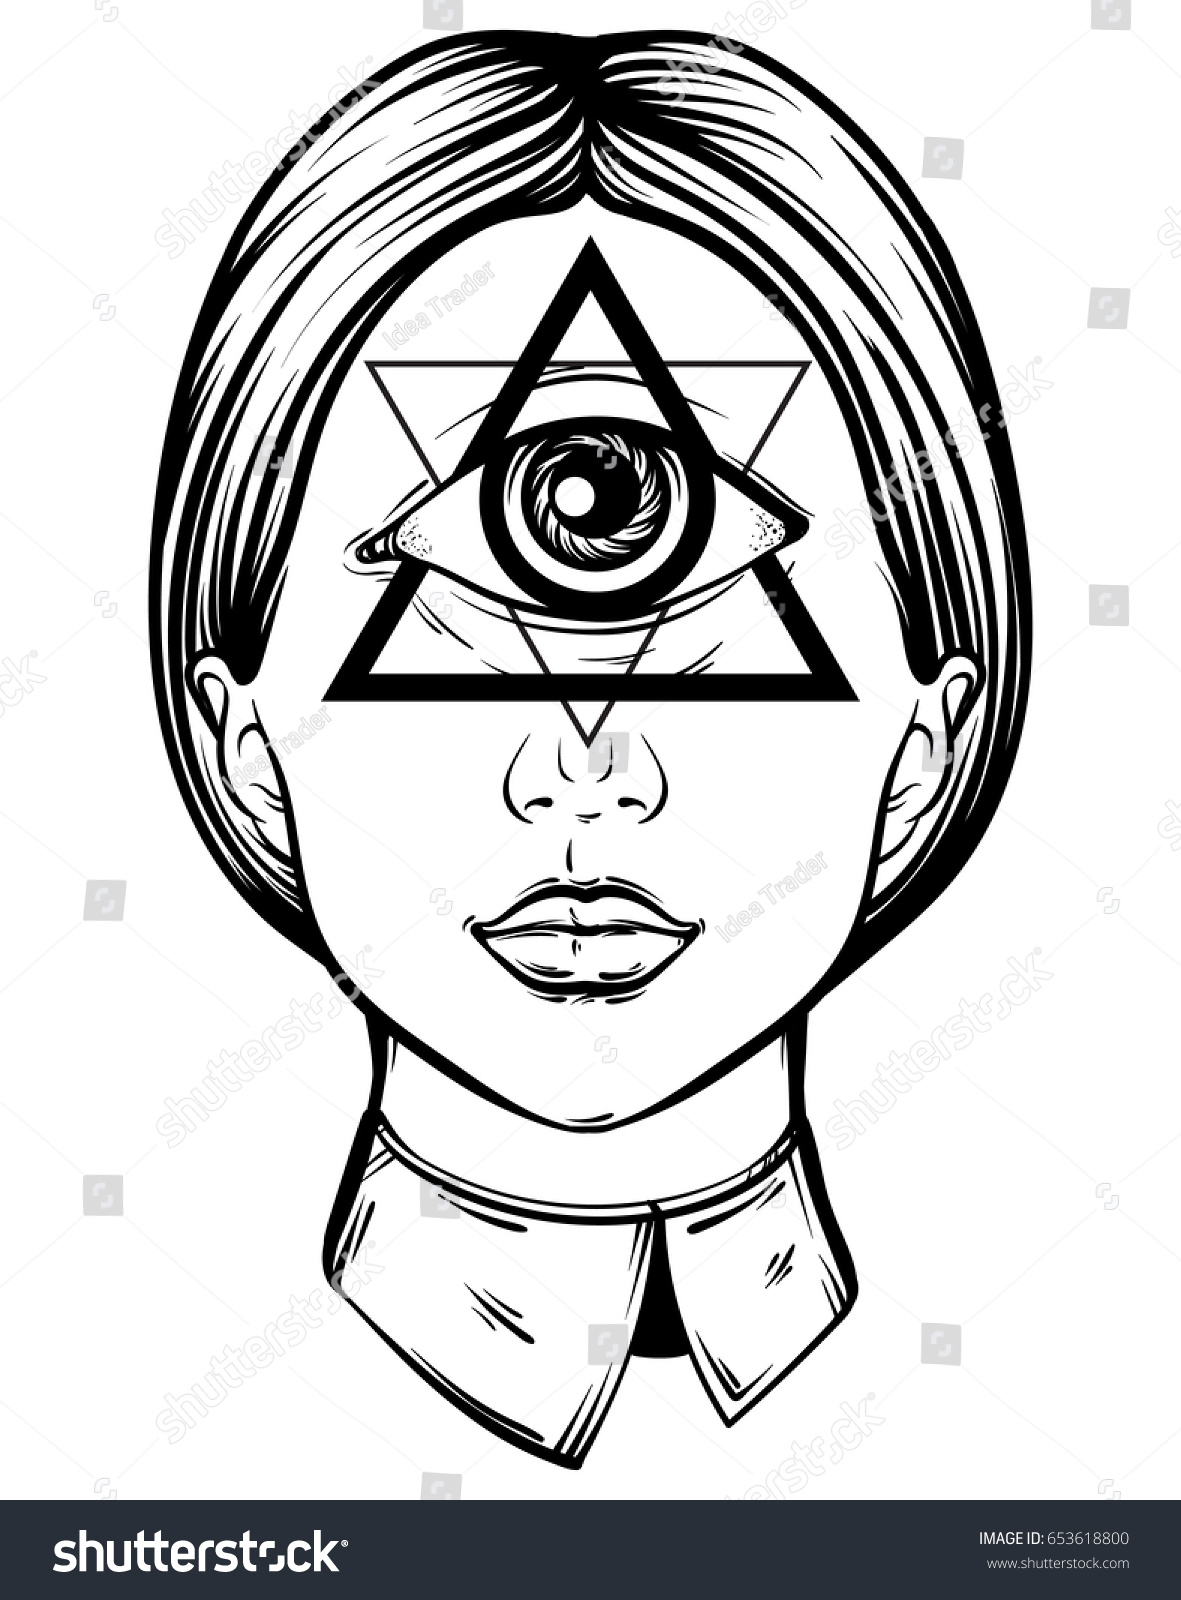 Vector Hand Drawn Illustration Cyclops Tattoo Stock Vector Royalty Free 653618800